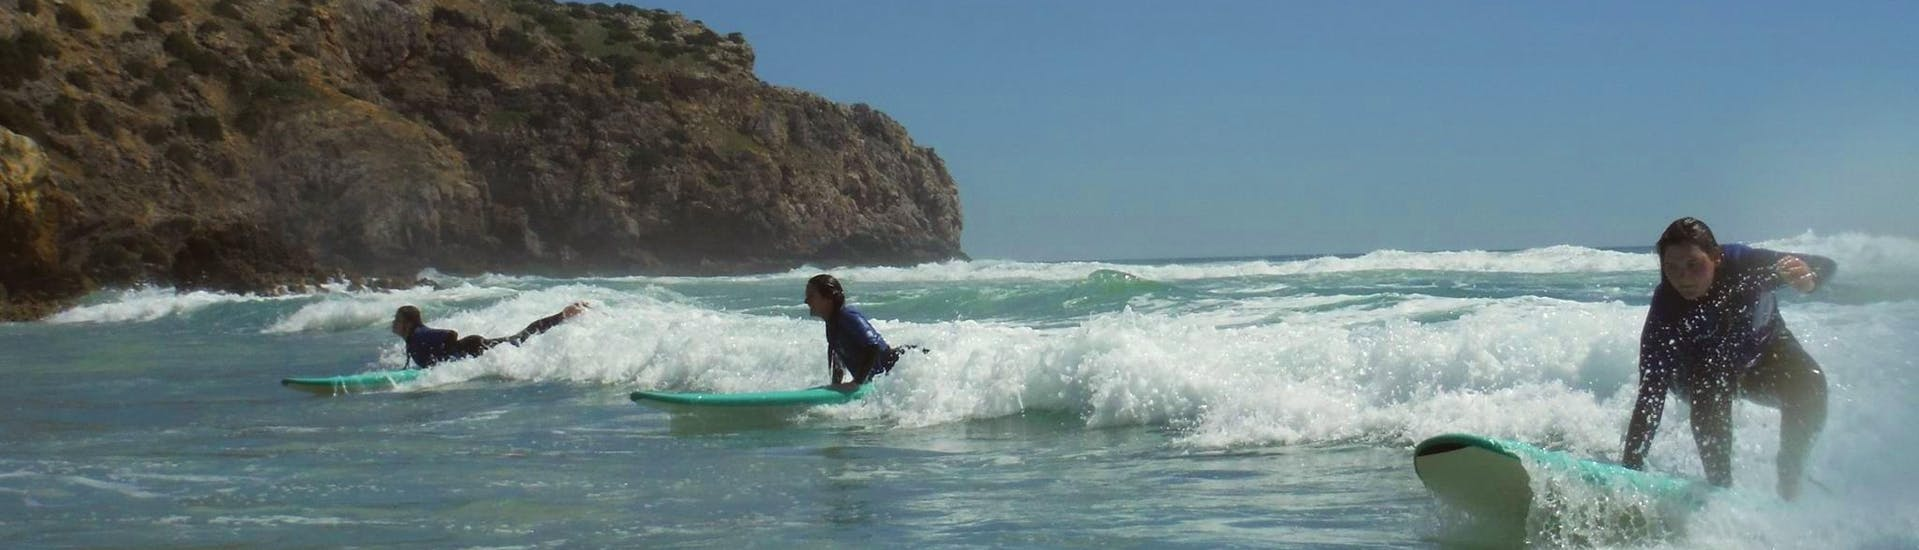 Three girls are catching the waves of the Atlantic during the Surfing Lessons for Beginners & Intermediate in the Algarve (age 12+) organized by Extreme Algarve Surf.